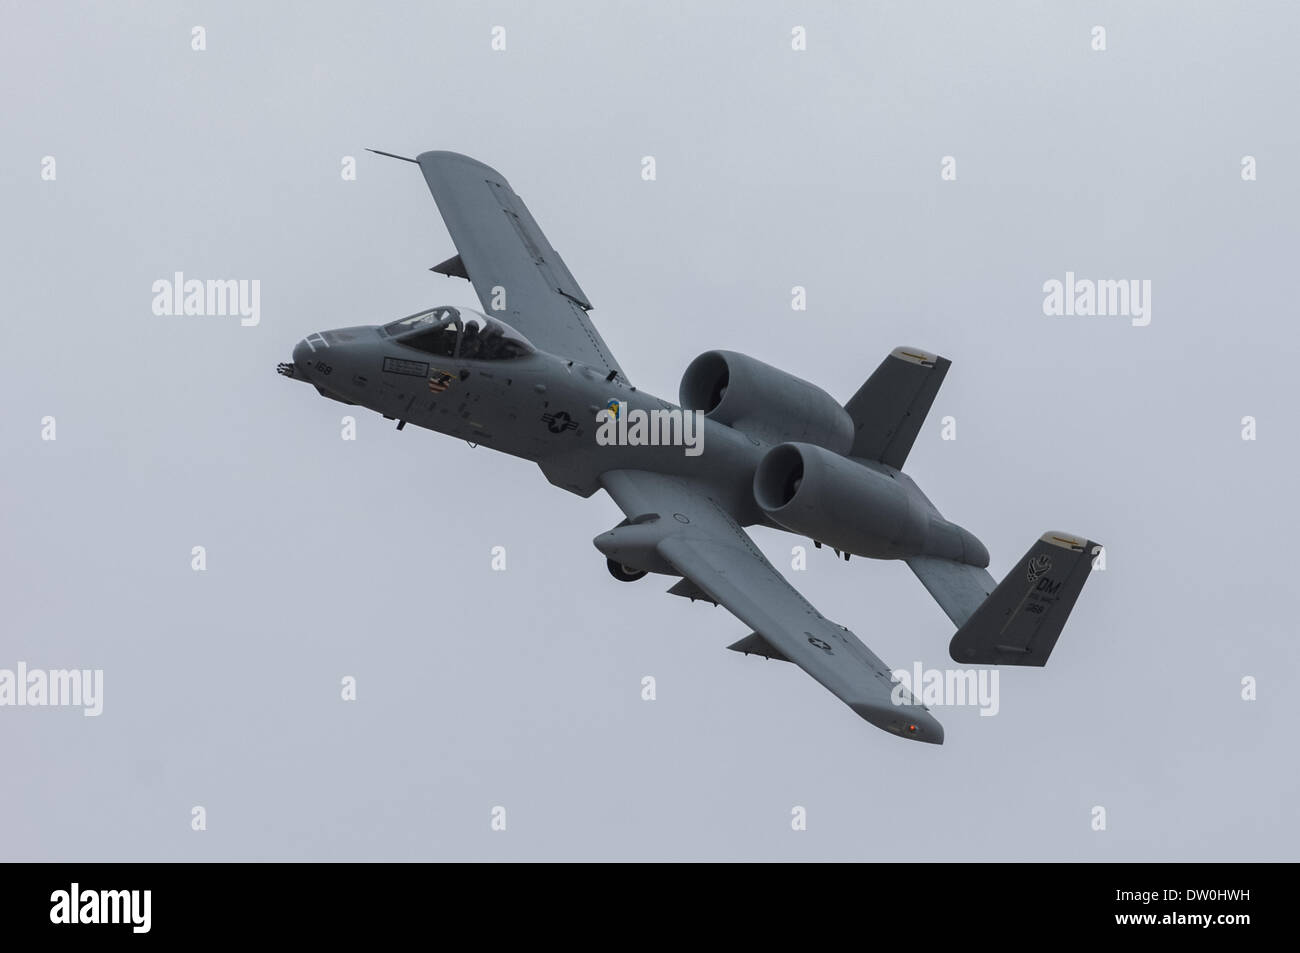 March 17, 2007 - Tucson, Arizona, United States of America - An A-10 aircraft flies over the runway at Davis-Monthan AFB in Tucson, Ariz. in this 2007 file photo. Davis-Monthan is home to the 355th Wing, which supports the A-10. The Pentagon announced yesterday plans to retire the A-10 as a cost-cutting measure to prepare for eventual delivery of the F-35 multipurpose fighter. The A-10 has served since late in the Vietnam War through contemporary fighting in Afghanistan and Iraq. The aircraft is generally praised by pilots and service crews for its survivability and performance. (Credit Im - Stock Image